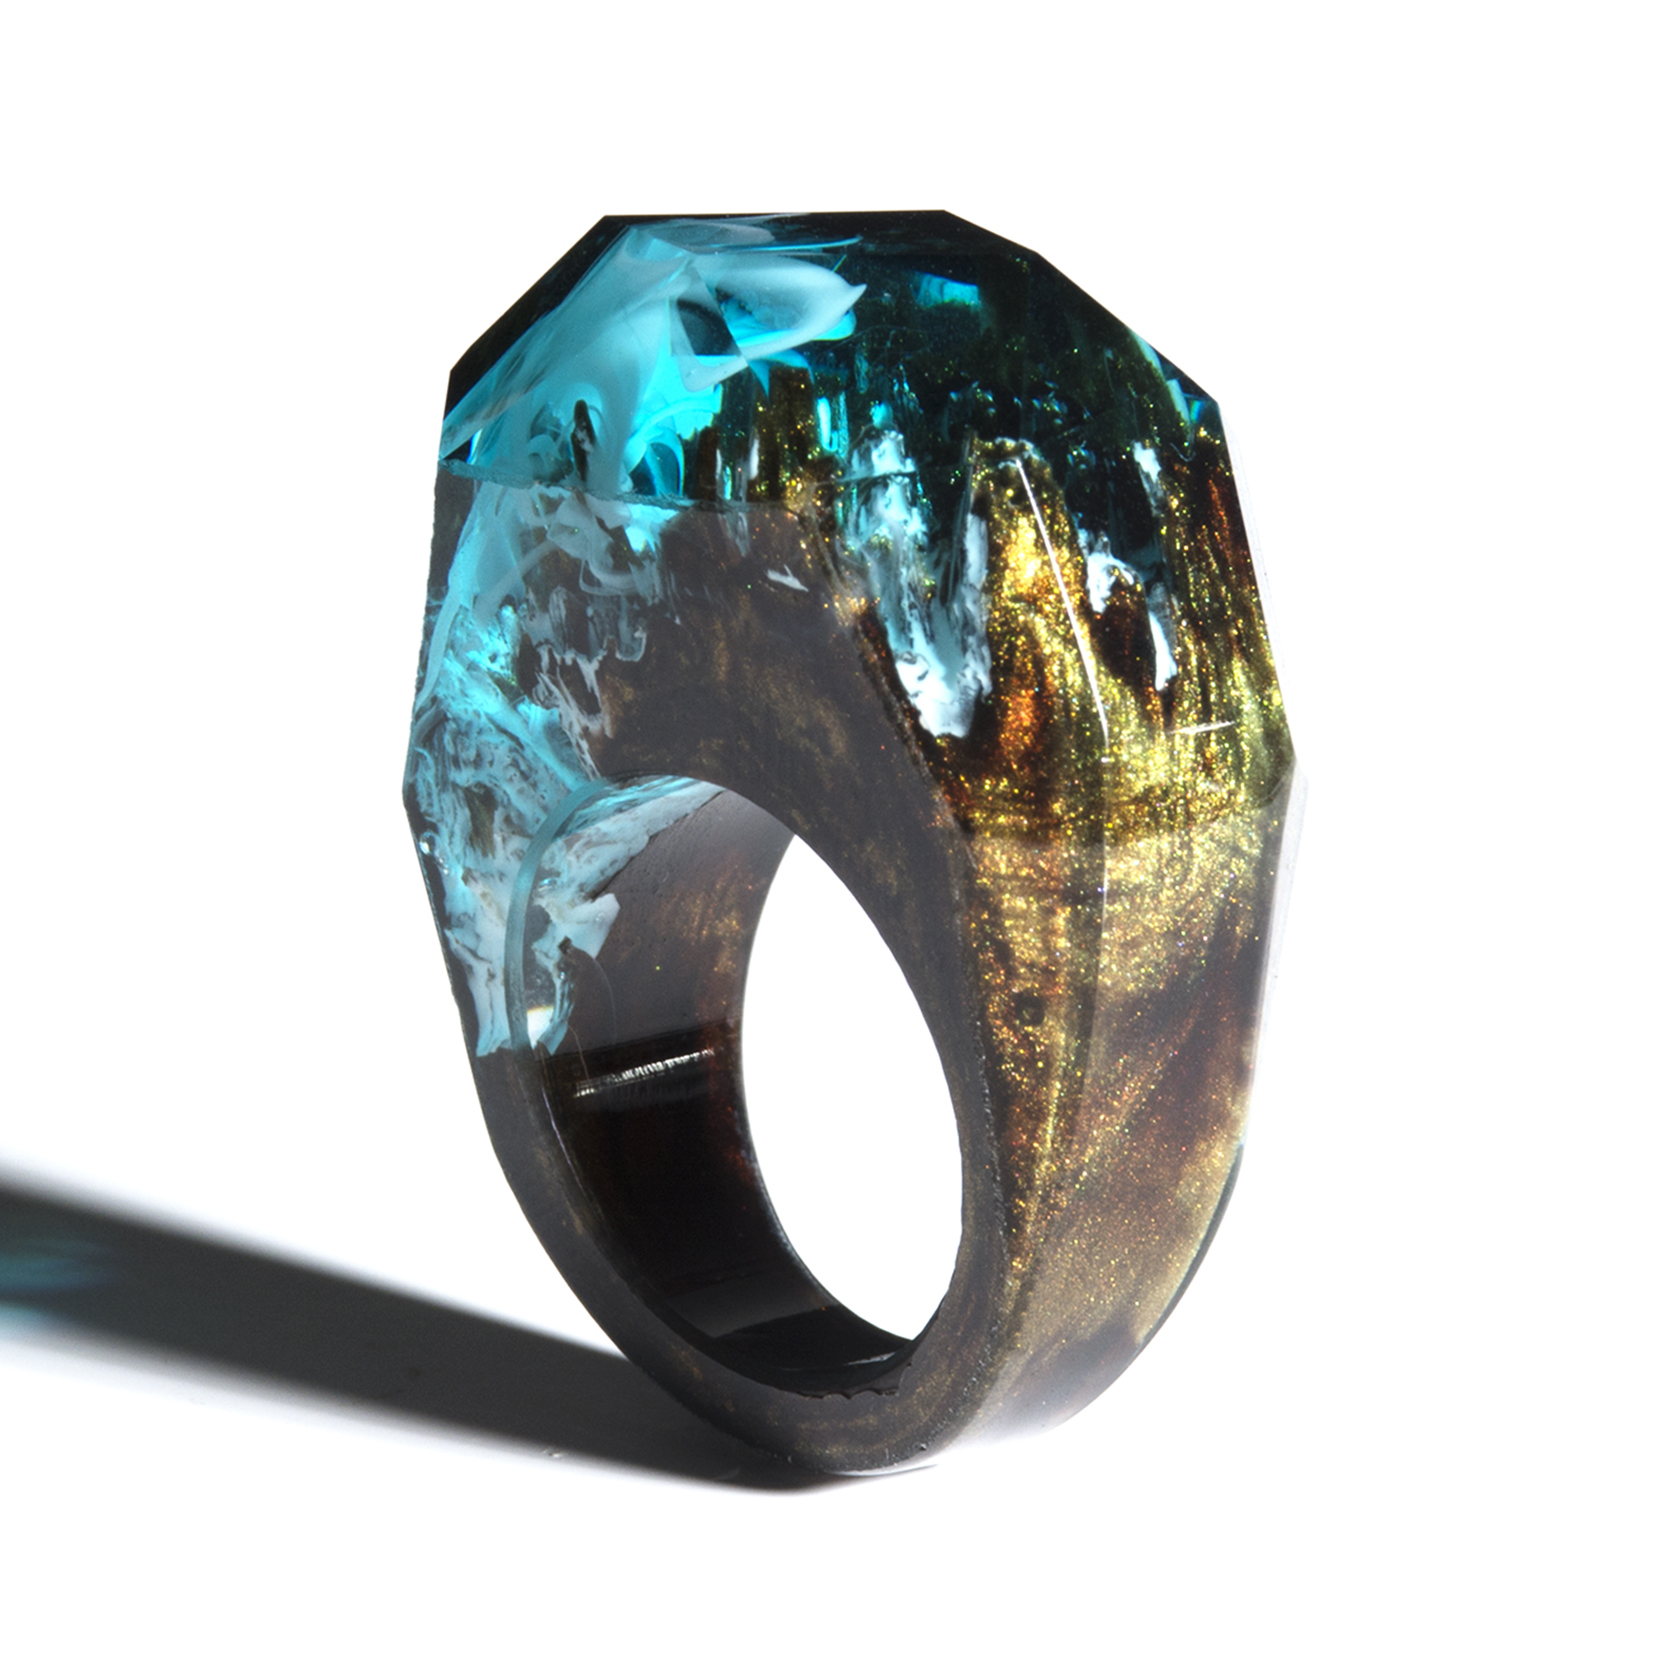 H167ce89cb64348f69d7485235c2951a6z - Forest Ring